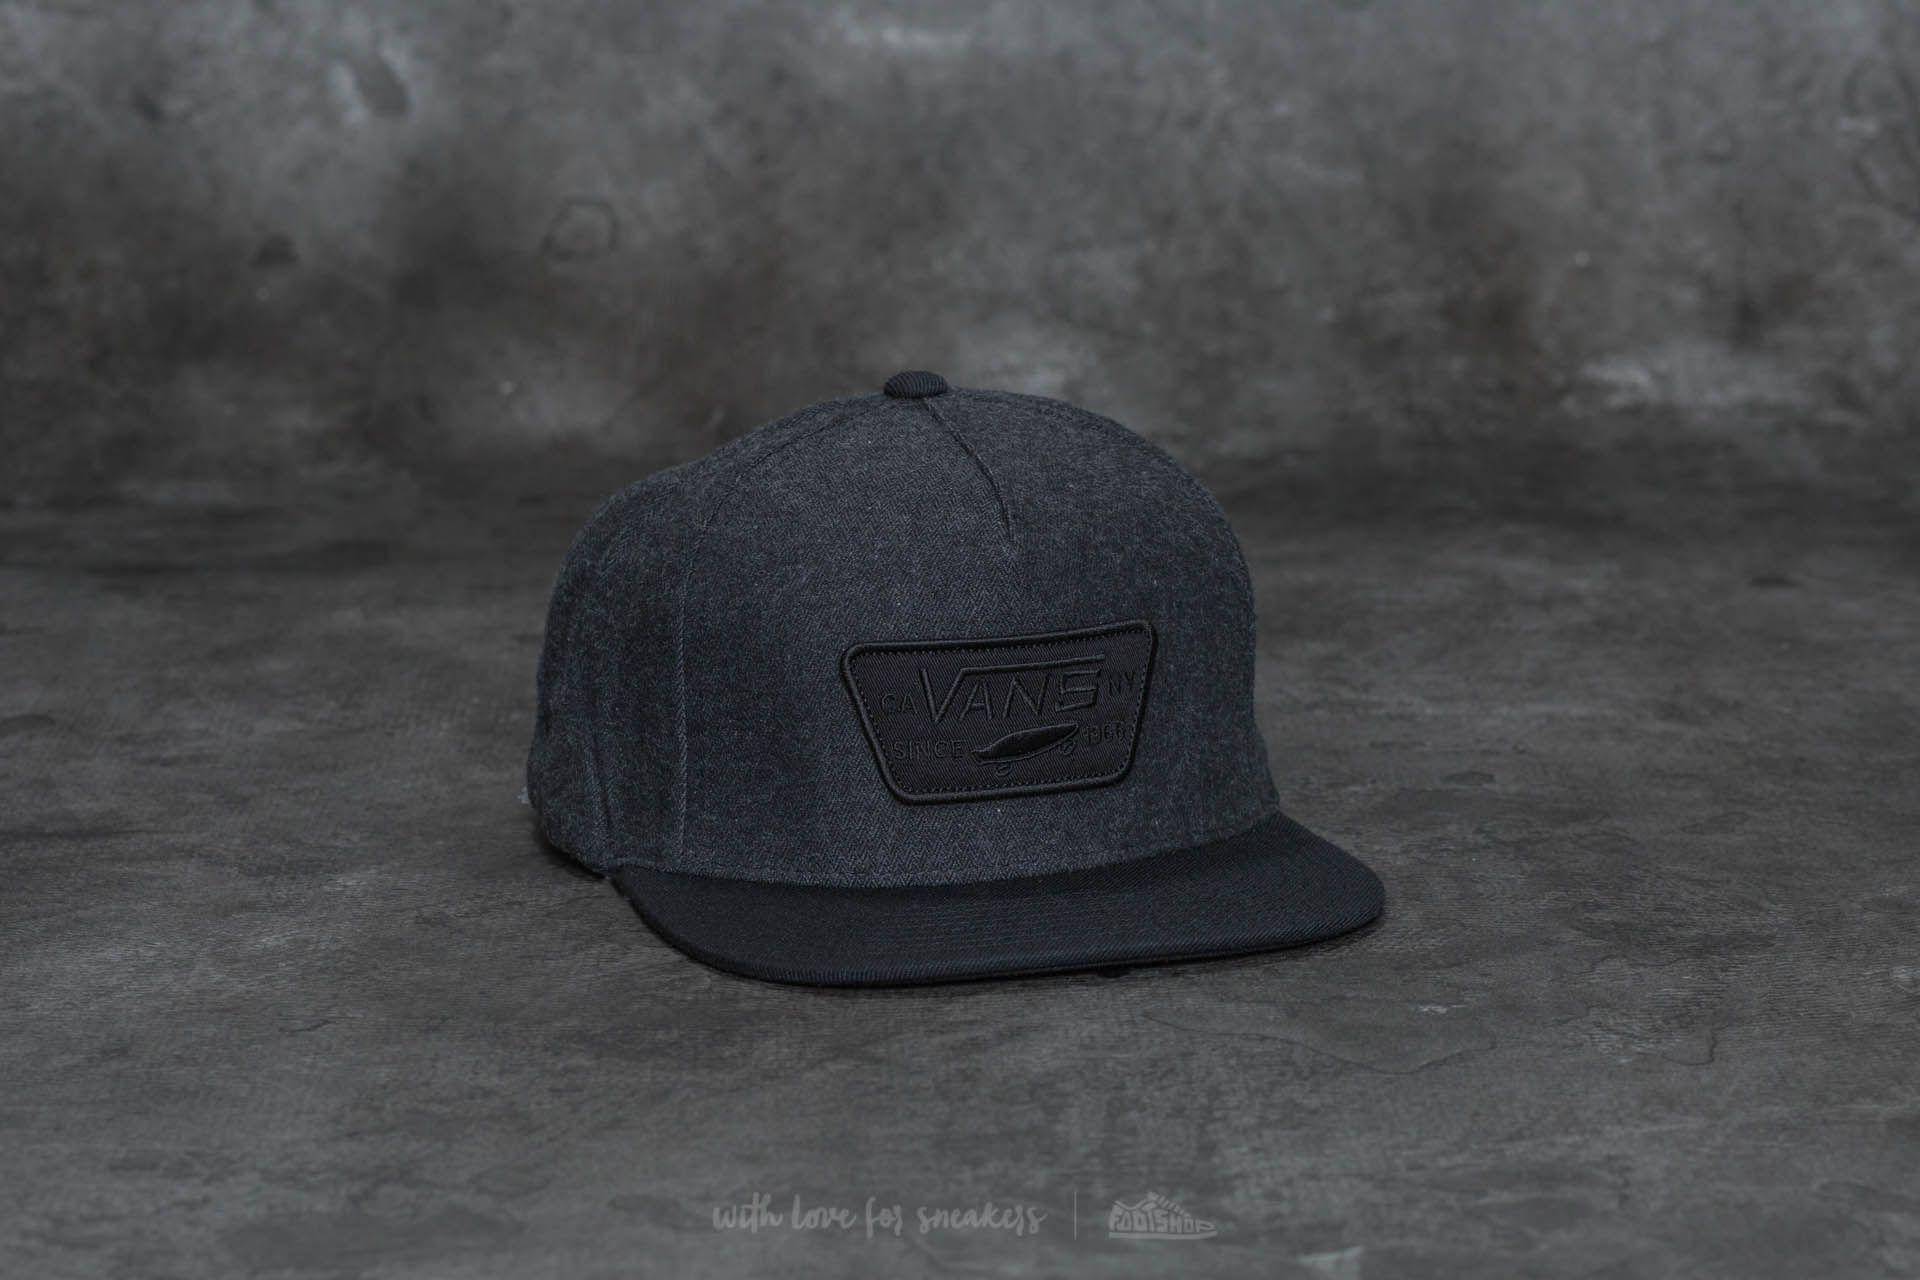 b61d830dd8ae6 Lyst - Vans Full Patch Snapback Asphalt-black in Black for Men